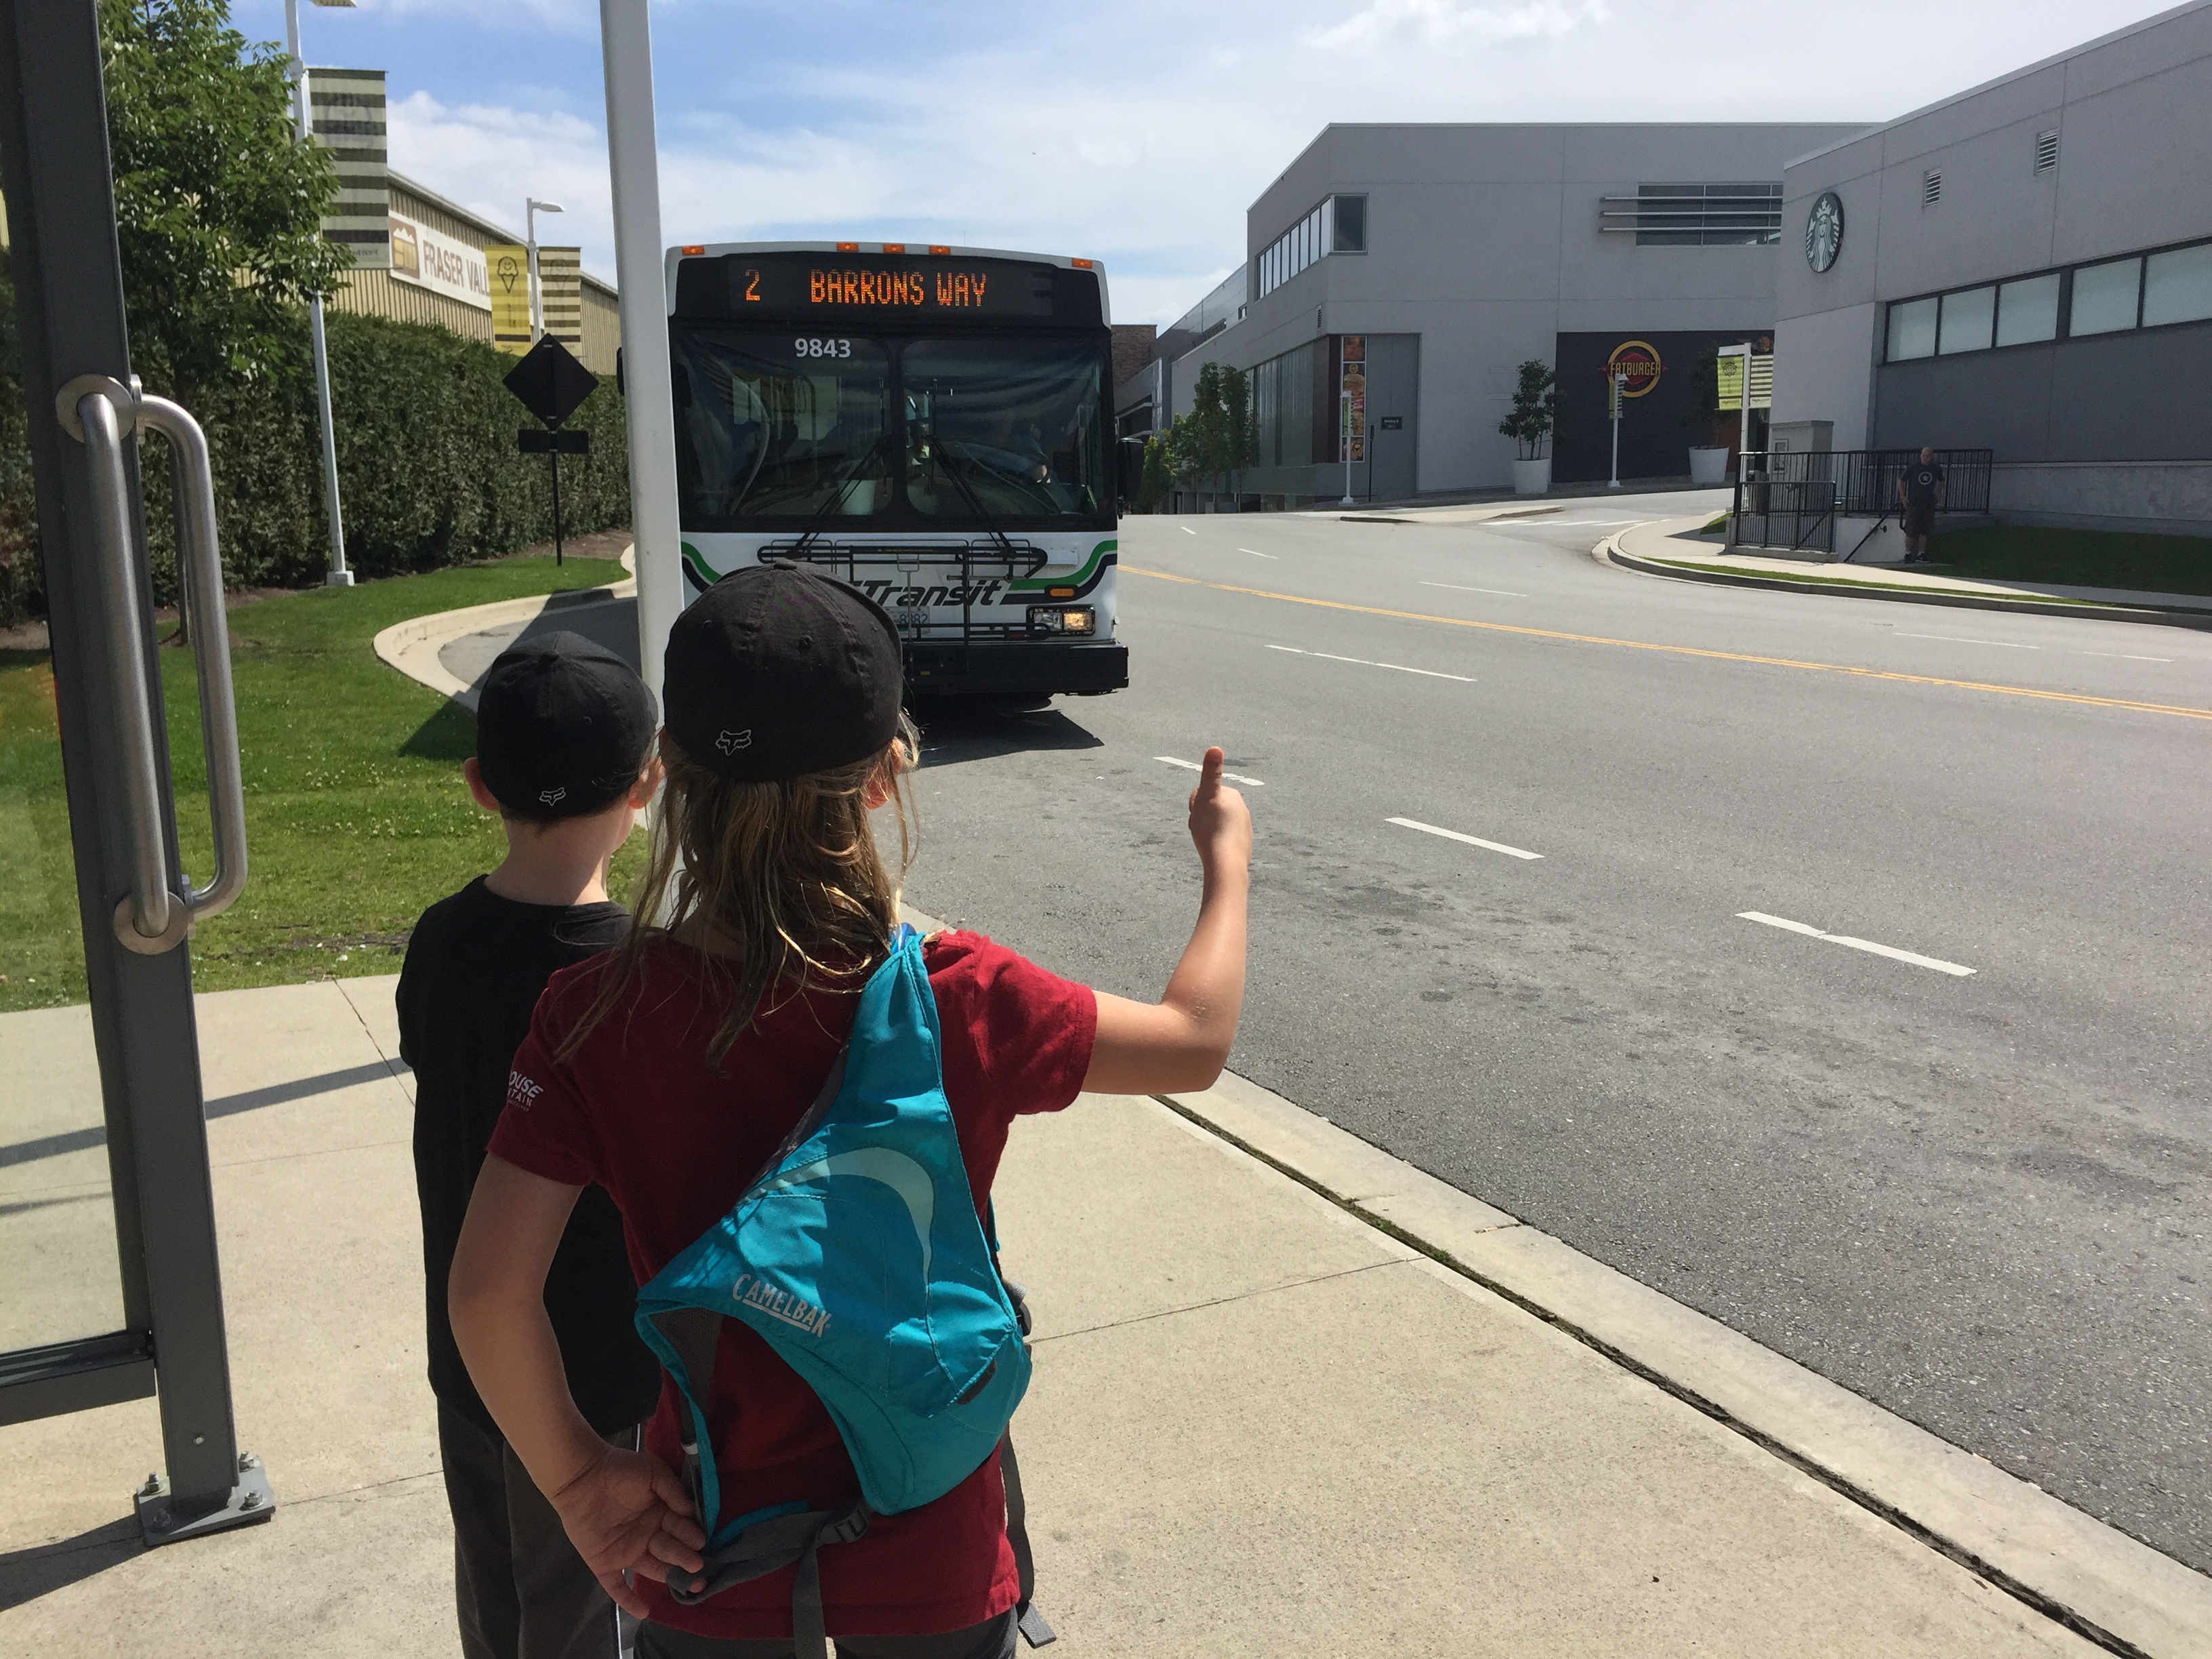 Children waiting at the Bus in Abbotsford #ExploreBCbyBus